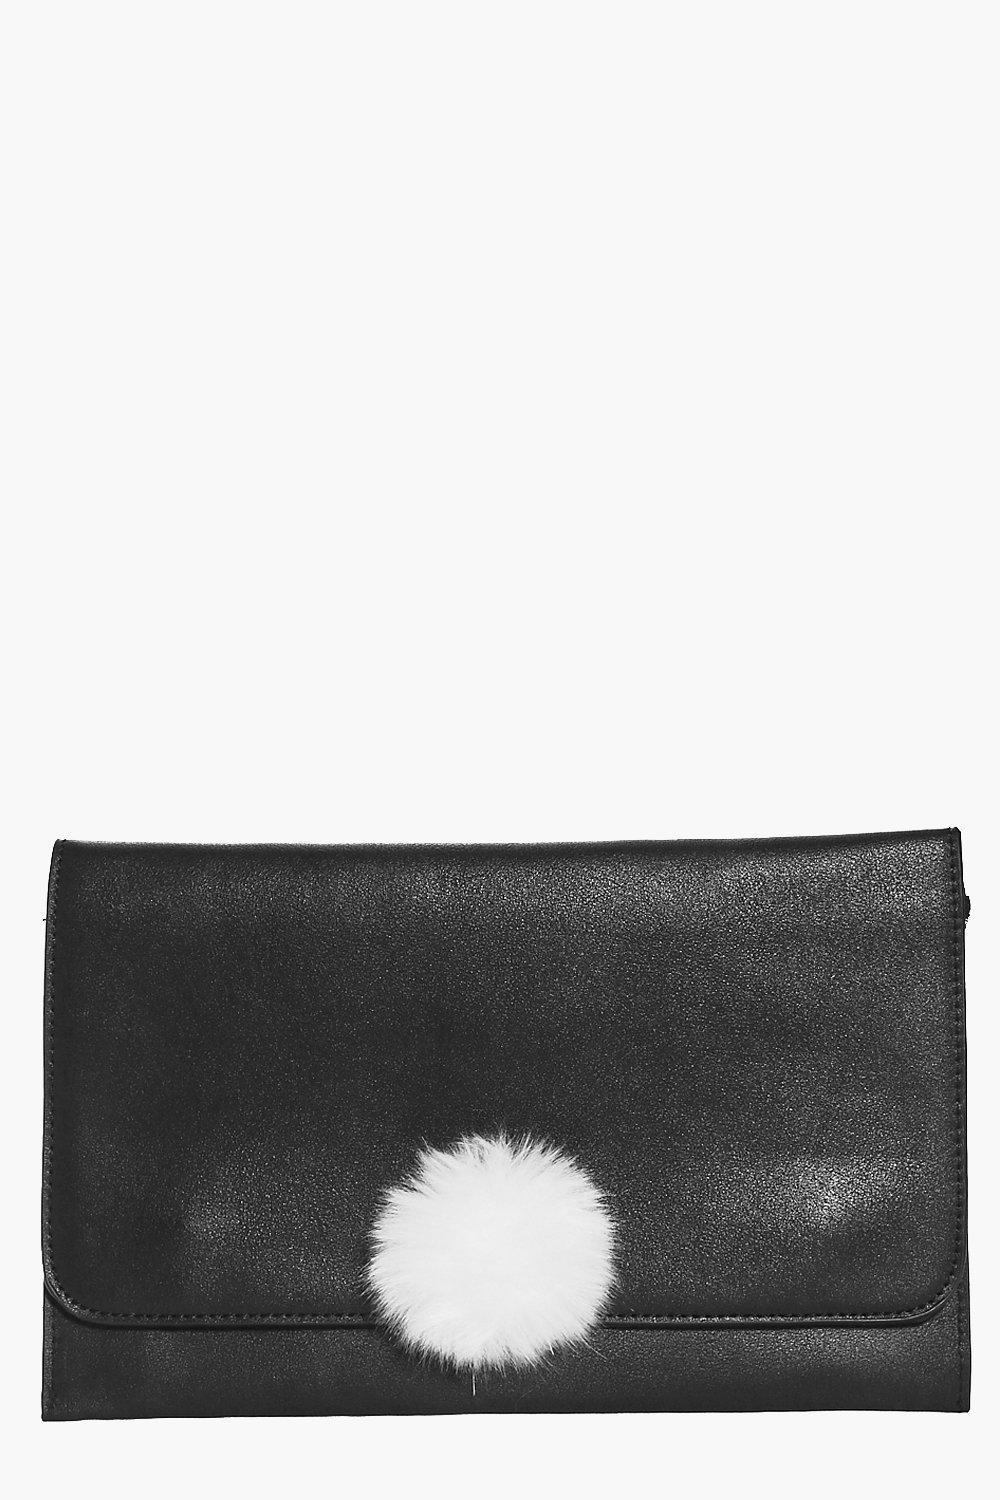 Pom Detail Clutch Bag Black - secondary colour: white; predominant colour: black; occasions: evening; type of pattern: standard; style: clutch; length: hand carry; size: standard; material: leather; pattern: plain; finish: plain; embellishment: pompom; multicoloured: multicoloured; season: a/w 2016; wardrobe: event